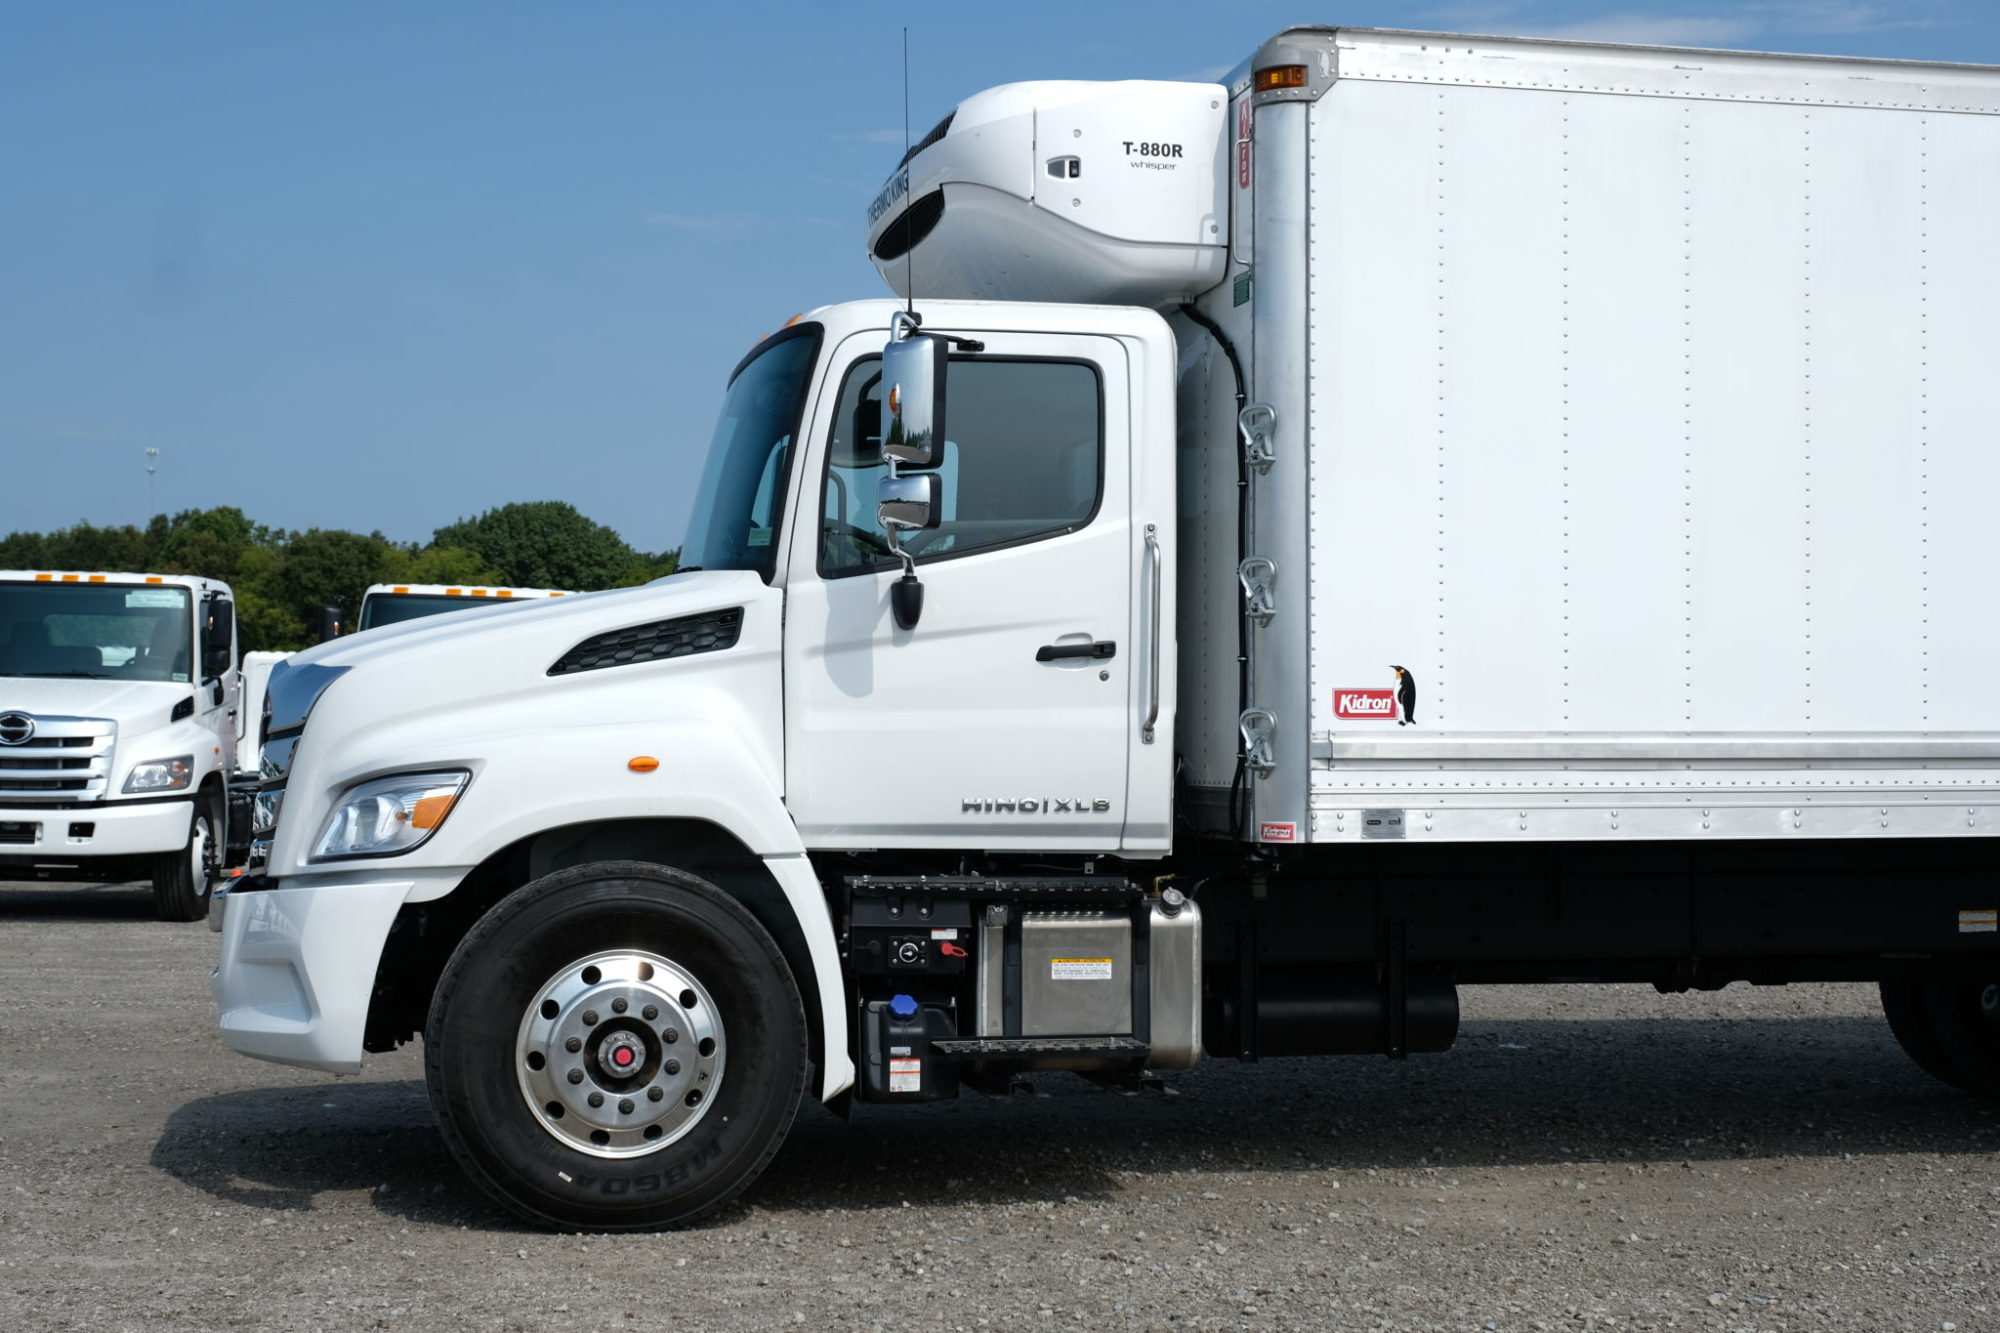 Test driving Hino's new baby -- the Baby 8 XL8 | Today's